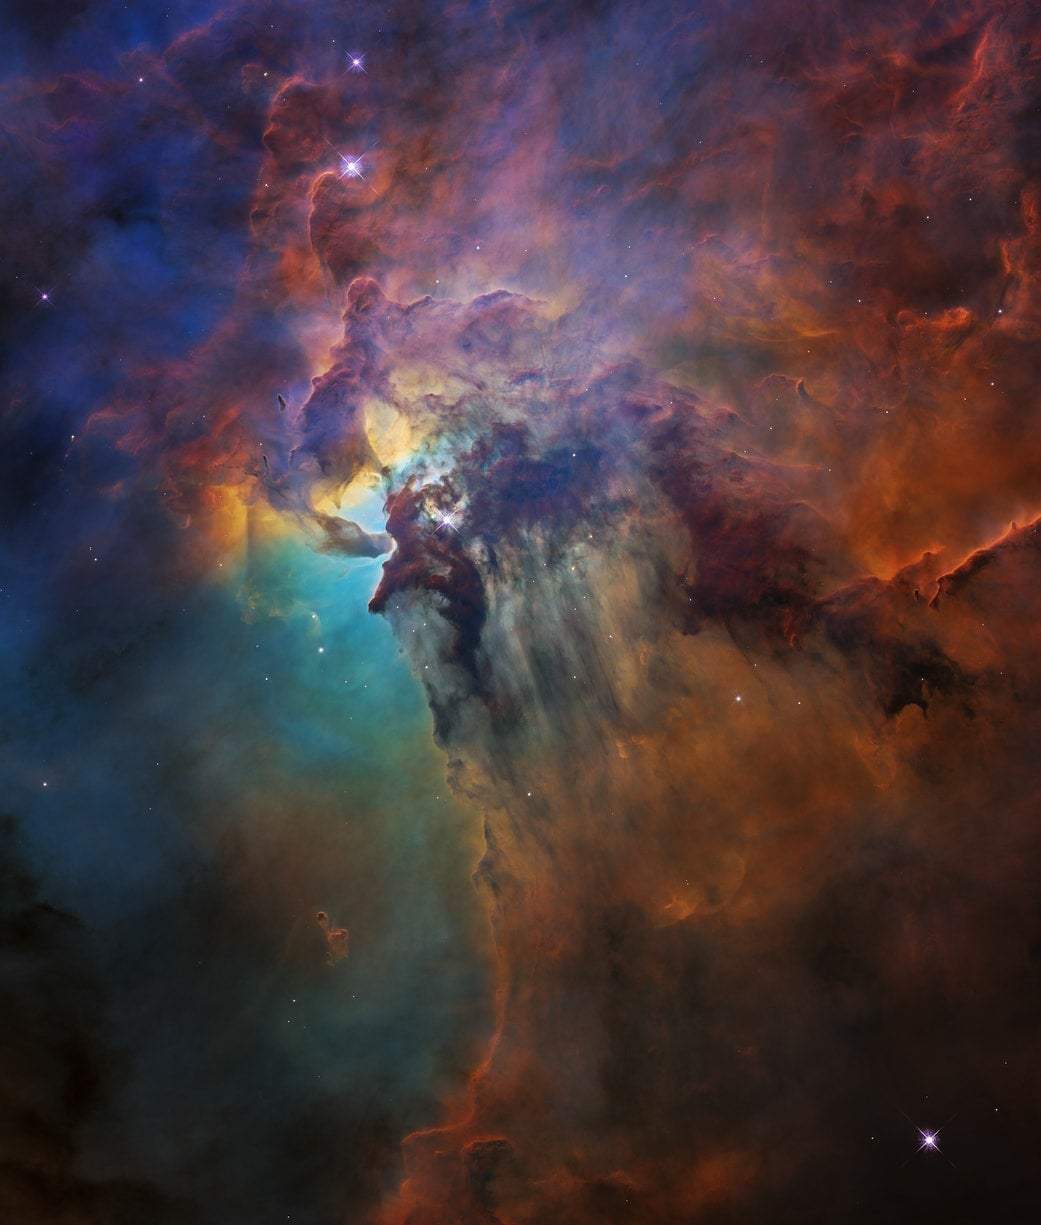 Here's an amazing new picture of the Lagoon Nebula to celebrate Hubble's 28th birthday